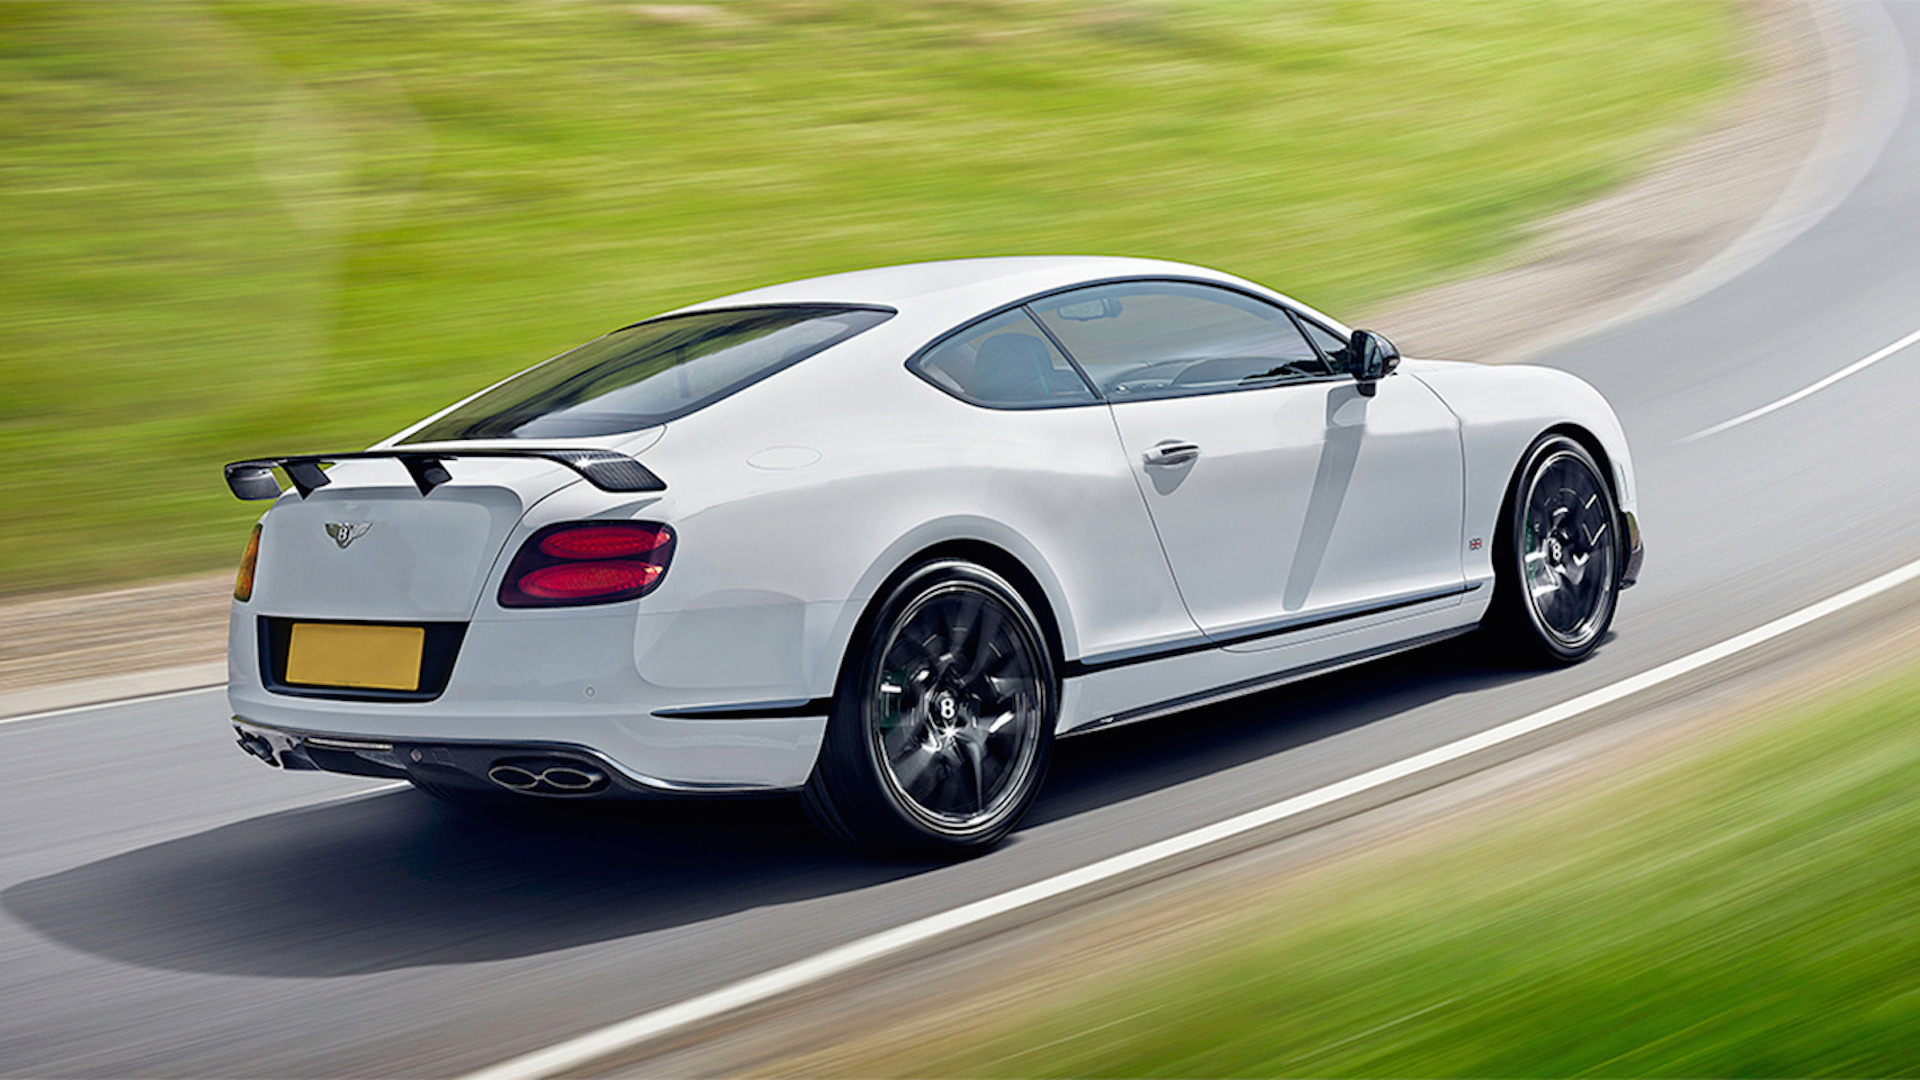 One-of-300 Bentley Continental GT3-R Up For Sale